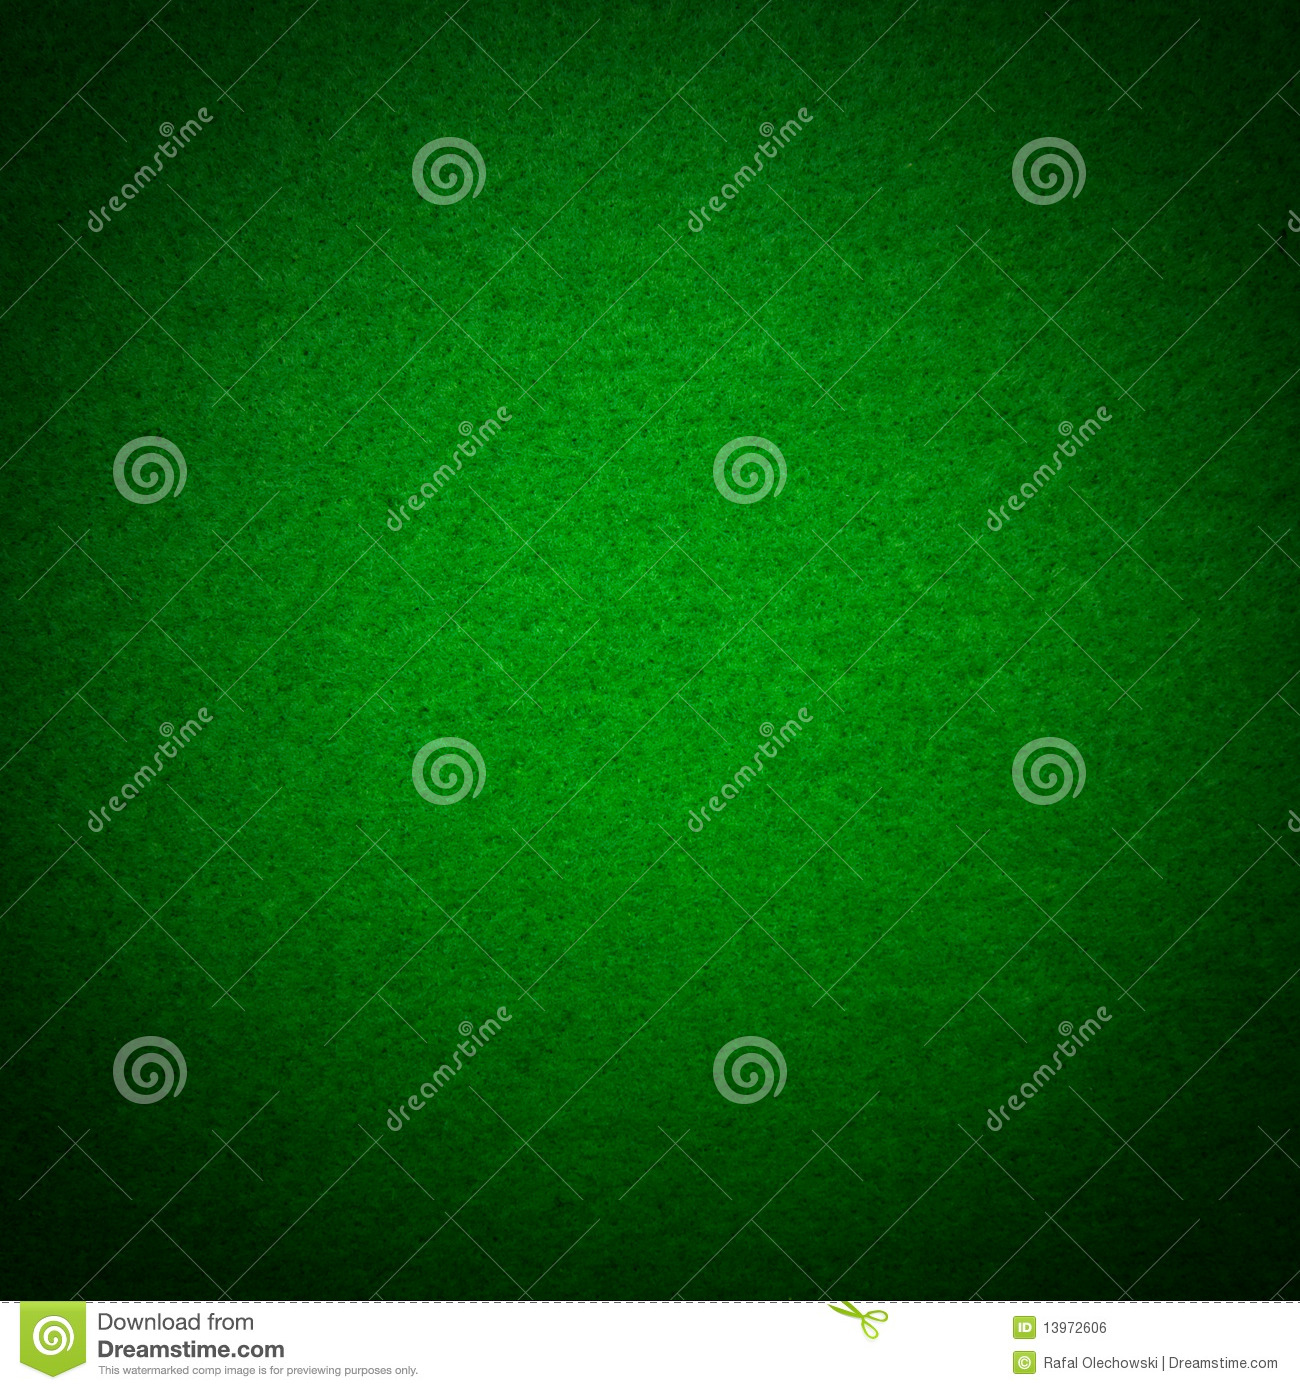 Poker table felt background